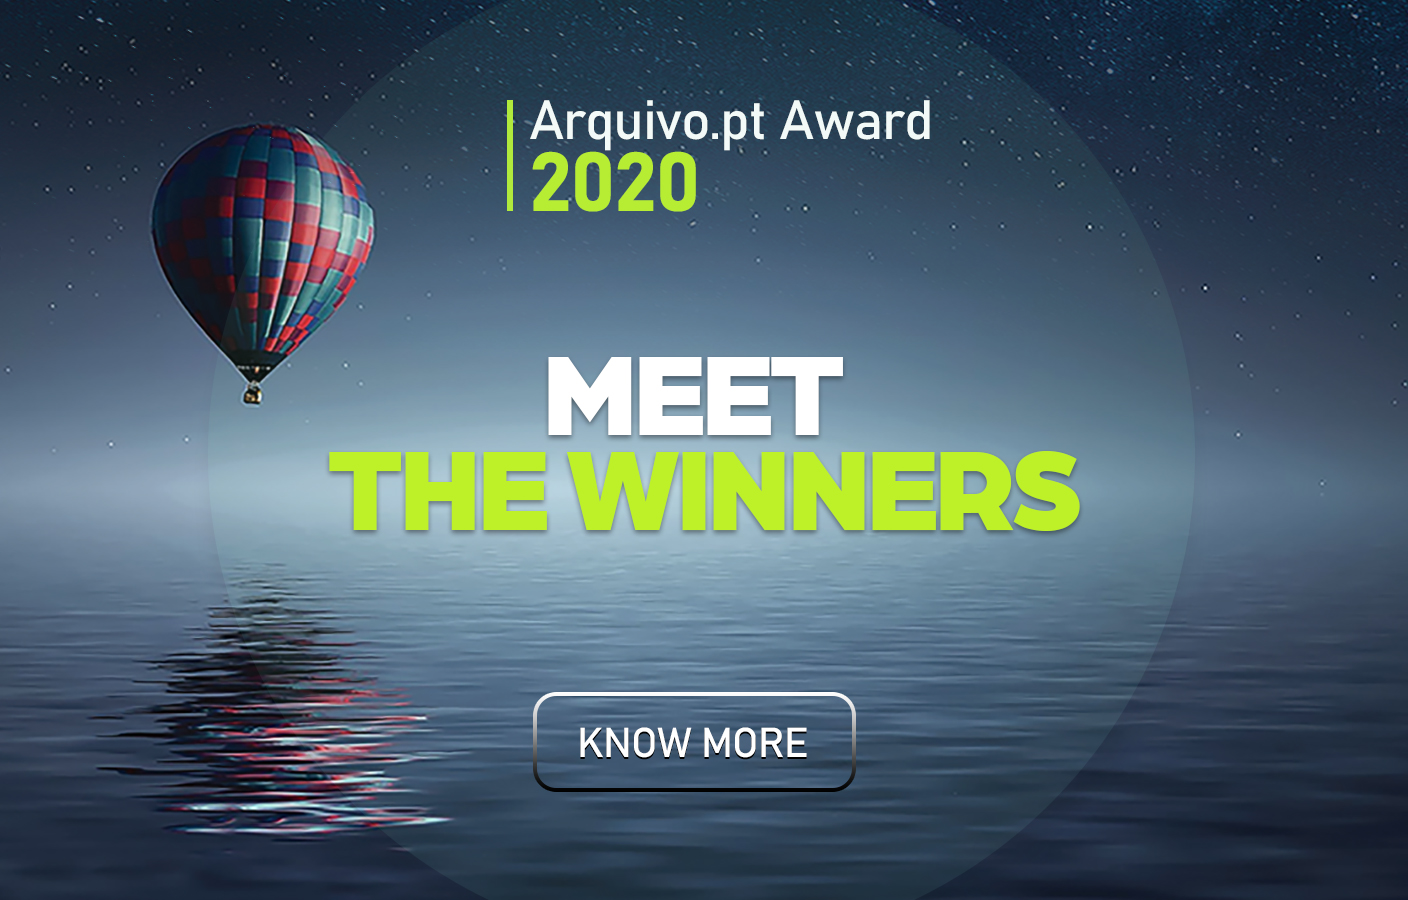 Card Meet the winners of the Arquivo.pt Award 2020